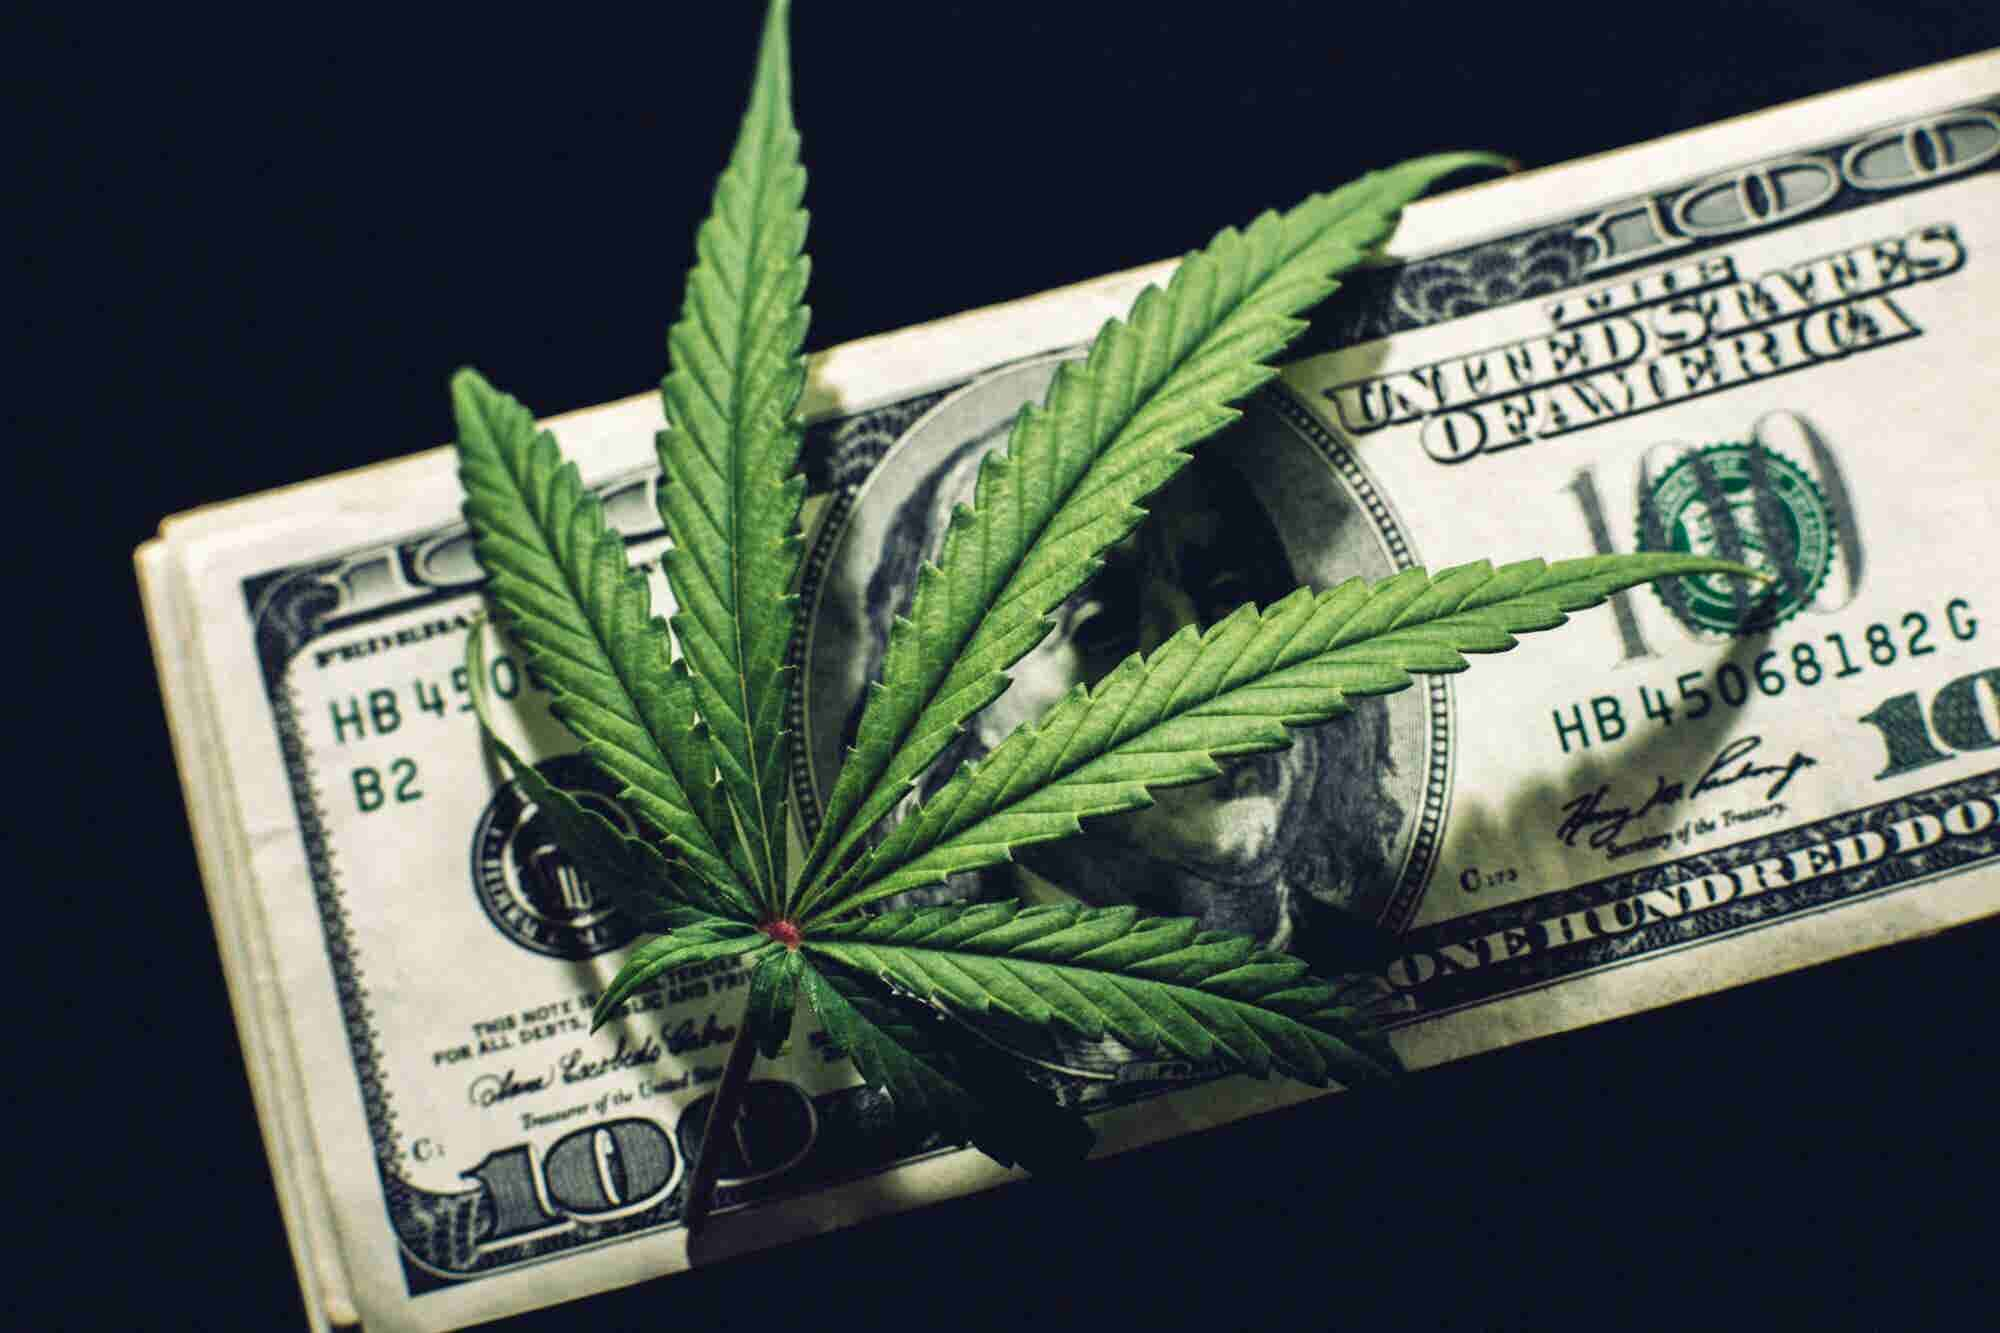 The Cannabis M&A Boom Is Looking Like the Dot.com Boom. Here's How to Avoid the Bust.